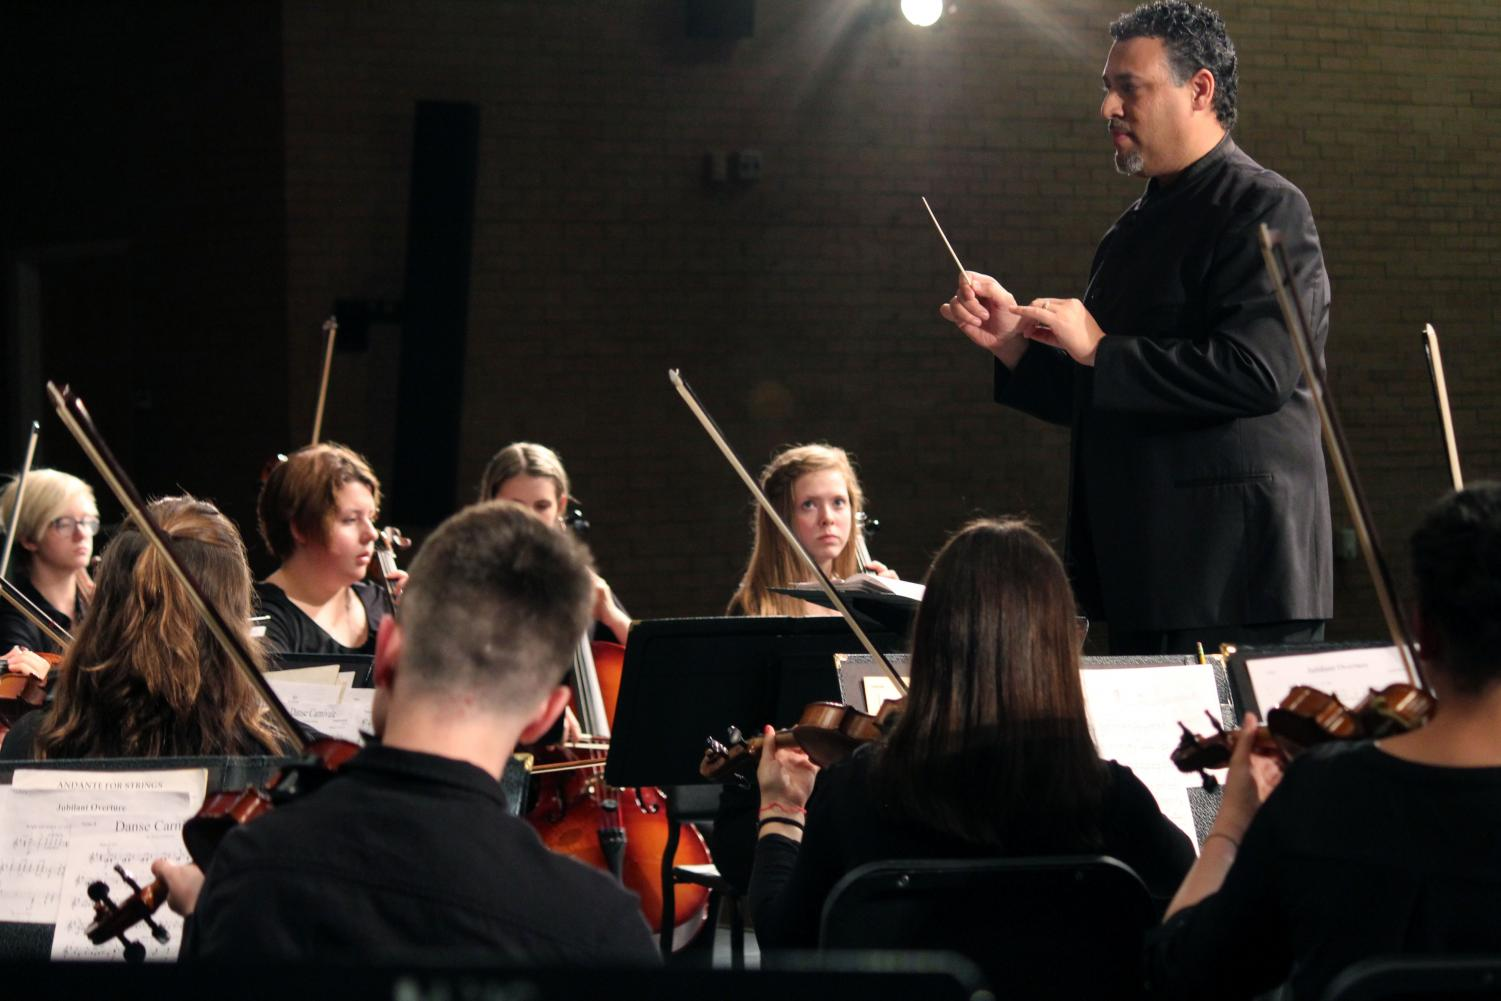 Director+Nate+McClendon+stands+above+the+freshman+orchestra+at+hey+begin+their+performance.+The+group+performed+with+both+Symphonic+and+Chamber+Orchestra+to+commemorate+their+performance+season.